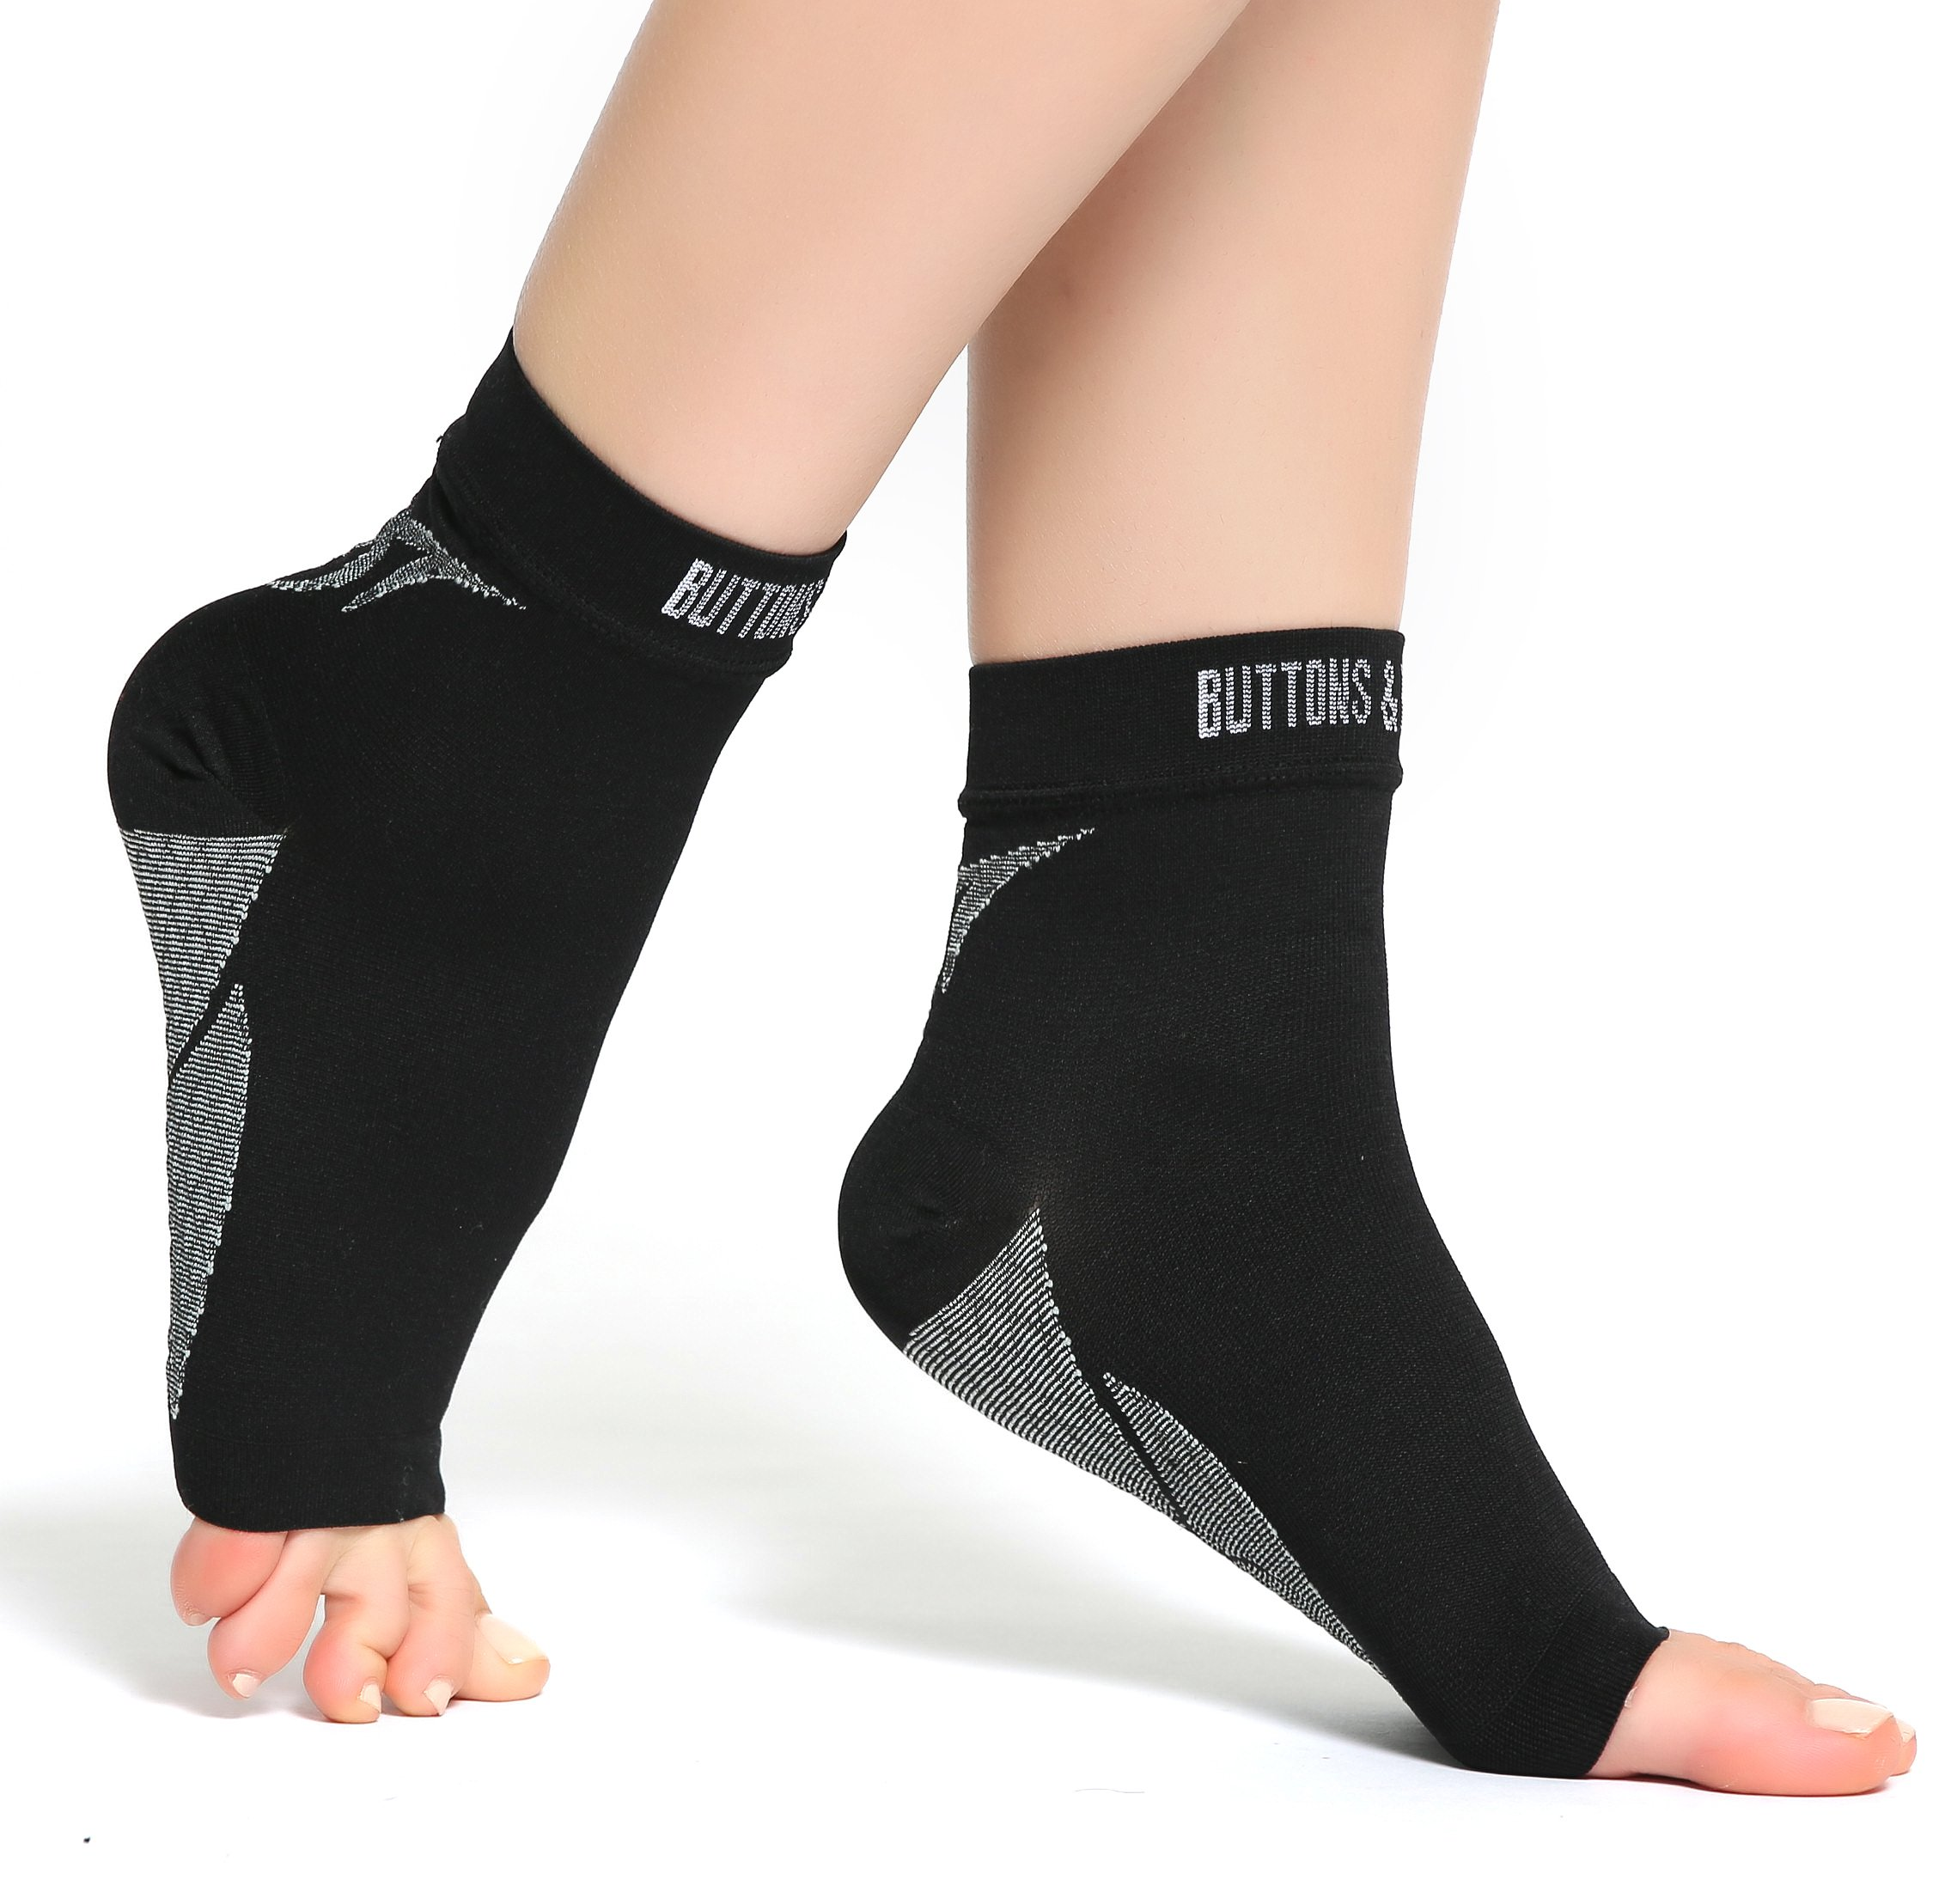 Buttons & Pleats Plantar Fasciitis Socks with Arch & Ankle Support, Best Foot Care Compression Sock Brace Support M Black